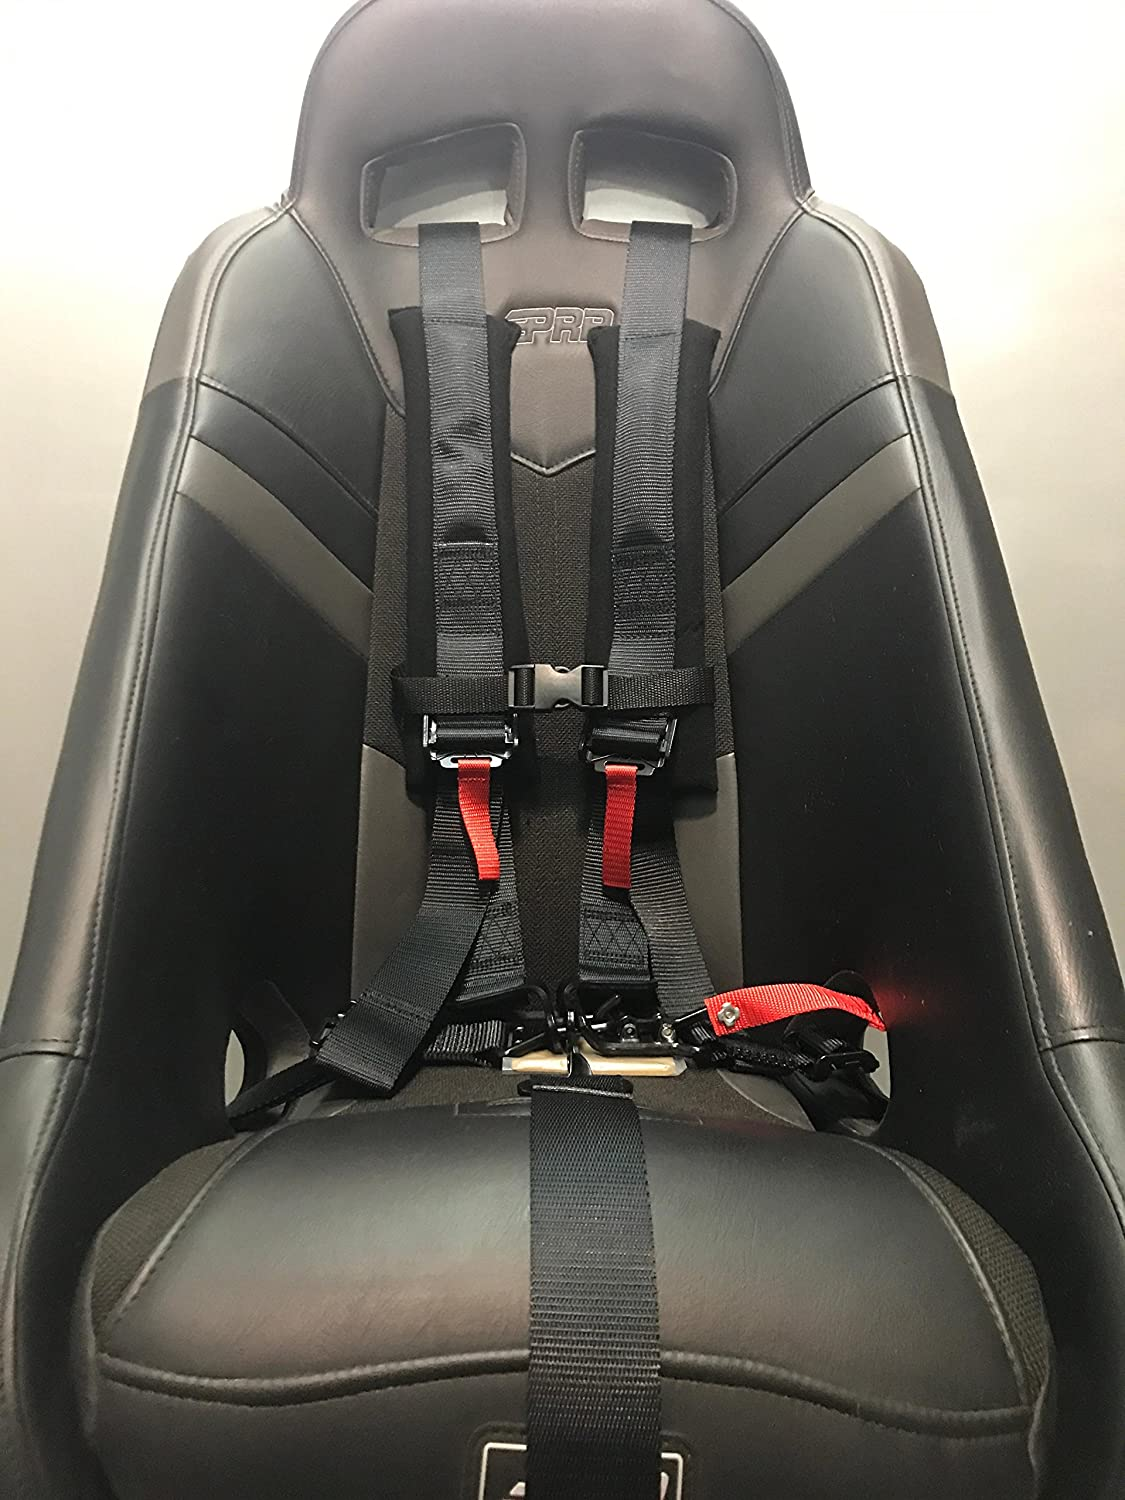 Amazon.com: 5 Point Harness With 2 Inch Padding: Automotive